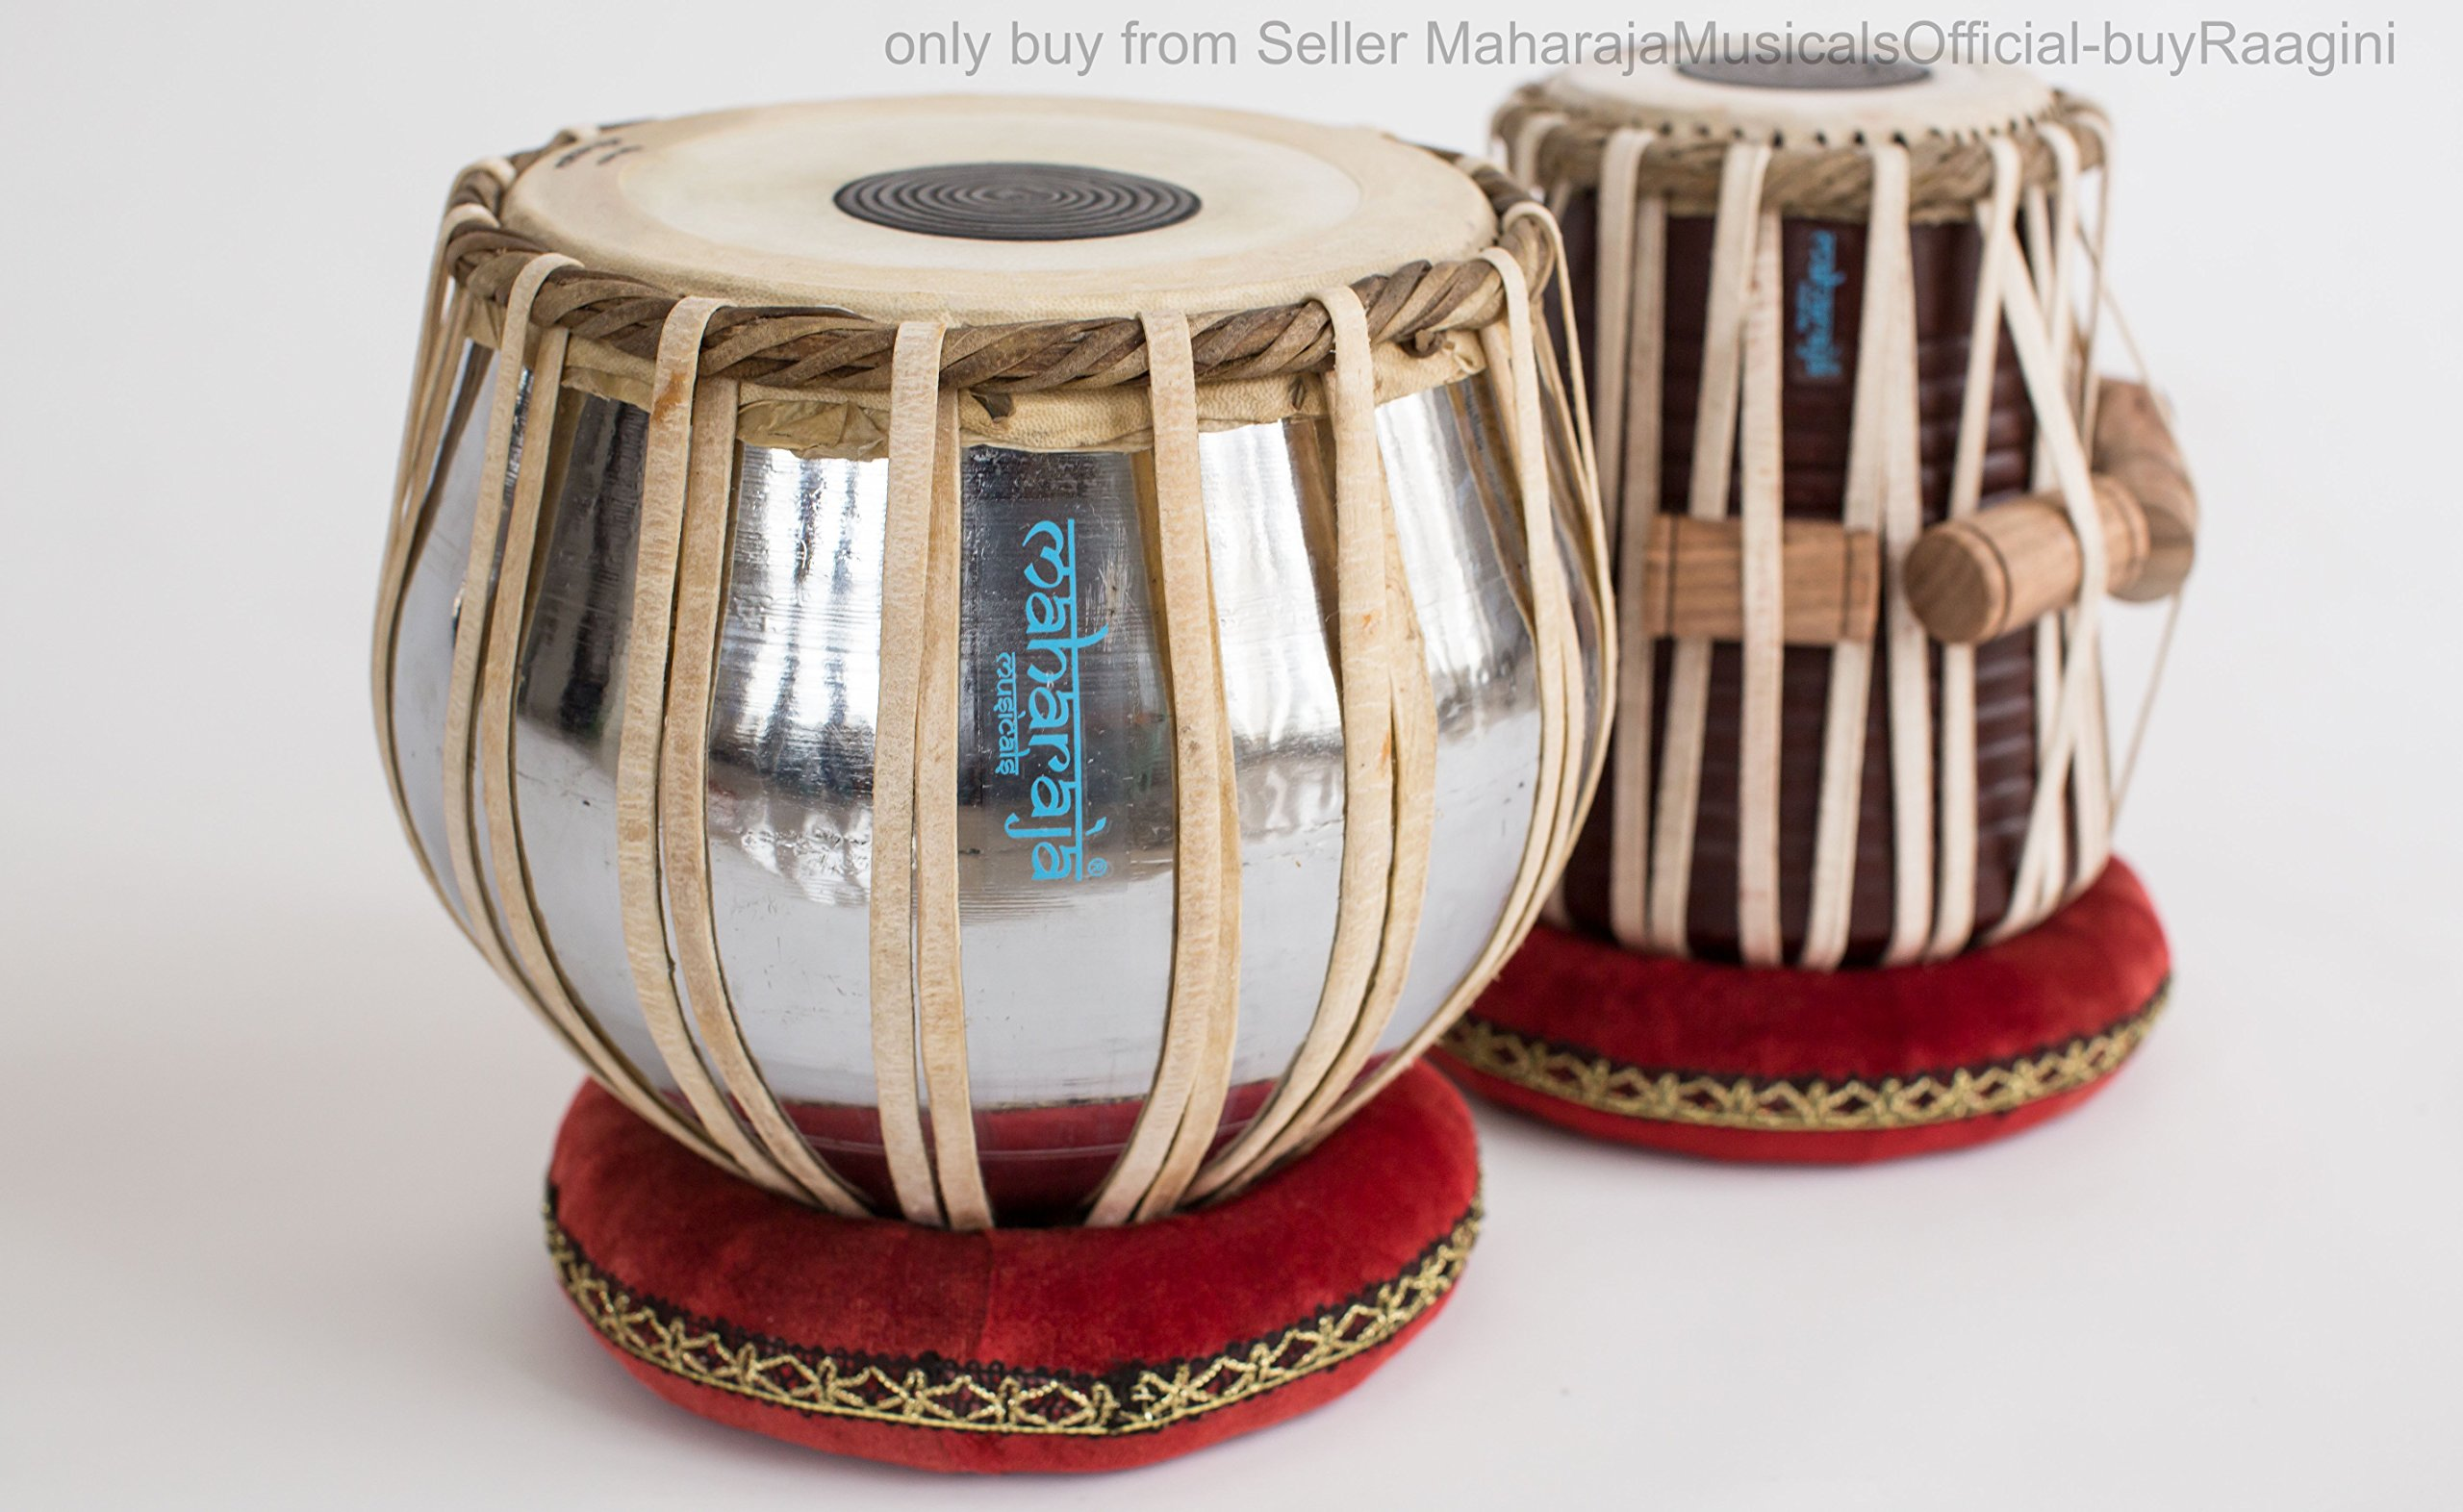 MAHARAJA Student Tabla Drum Set, Basic Tabla Set, Steel Bayan, Dayan with Book, Hammer, Cushions & Cover - Perfect Tablas for Students and Beginners on Budget (PDI-IB) Tabla Drums, Indian Hand Drums by Maharaja Musicals (Image #2)